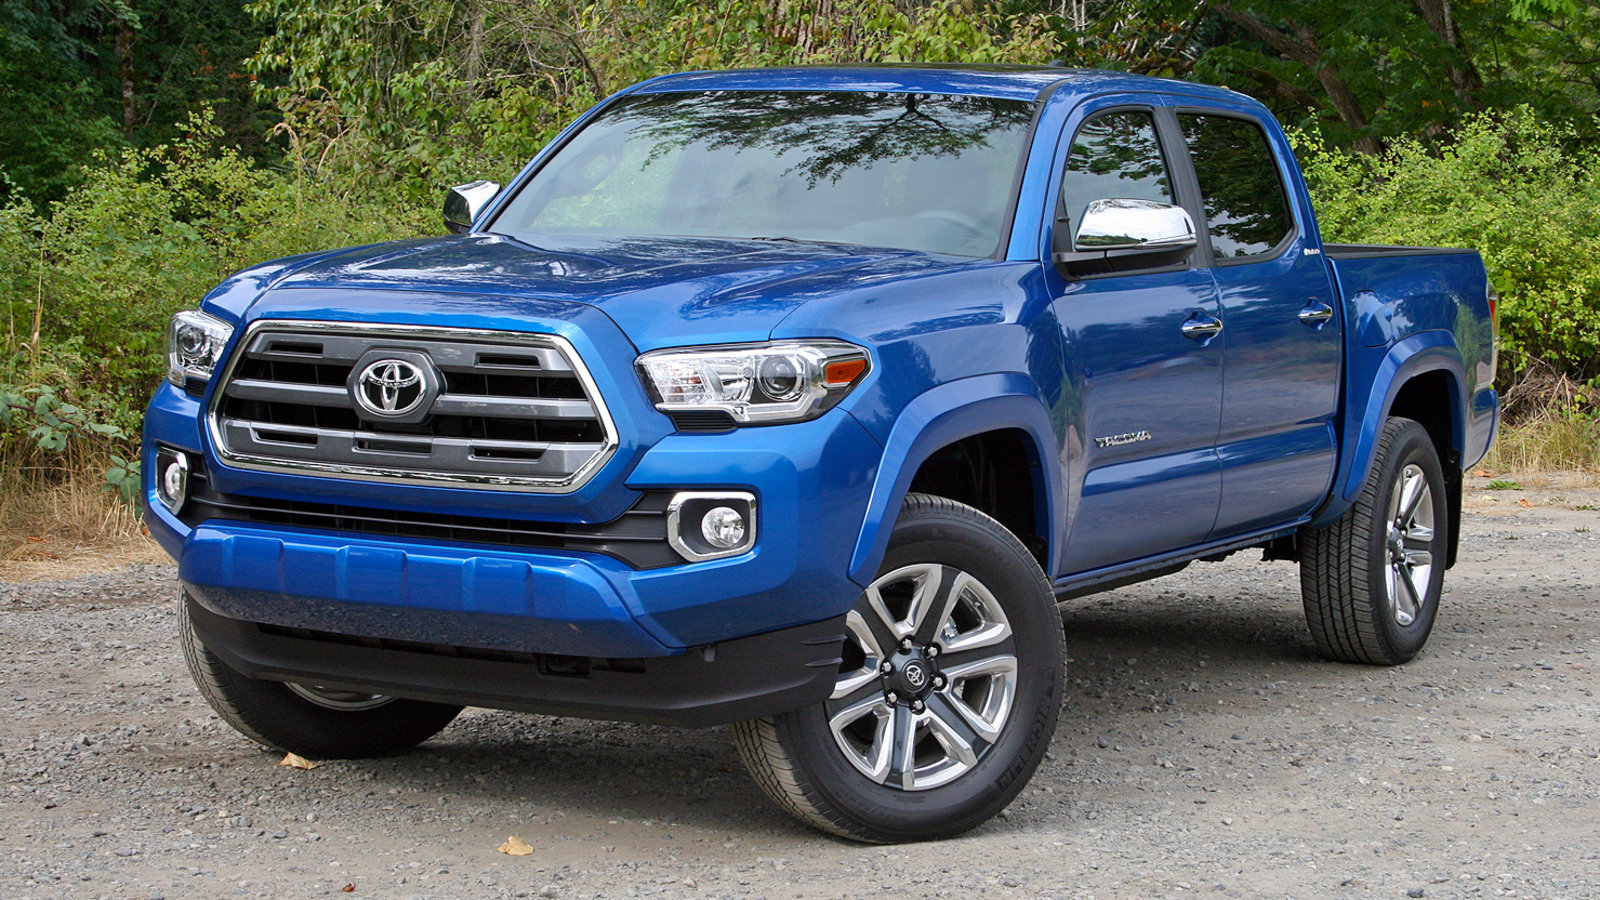 2016 toyota tacoma first drive review gallery top speed. Black Bedroom Furniture Sets. Home Design Ideas